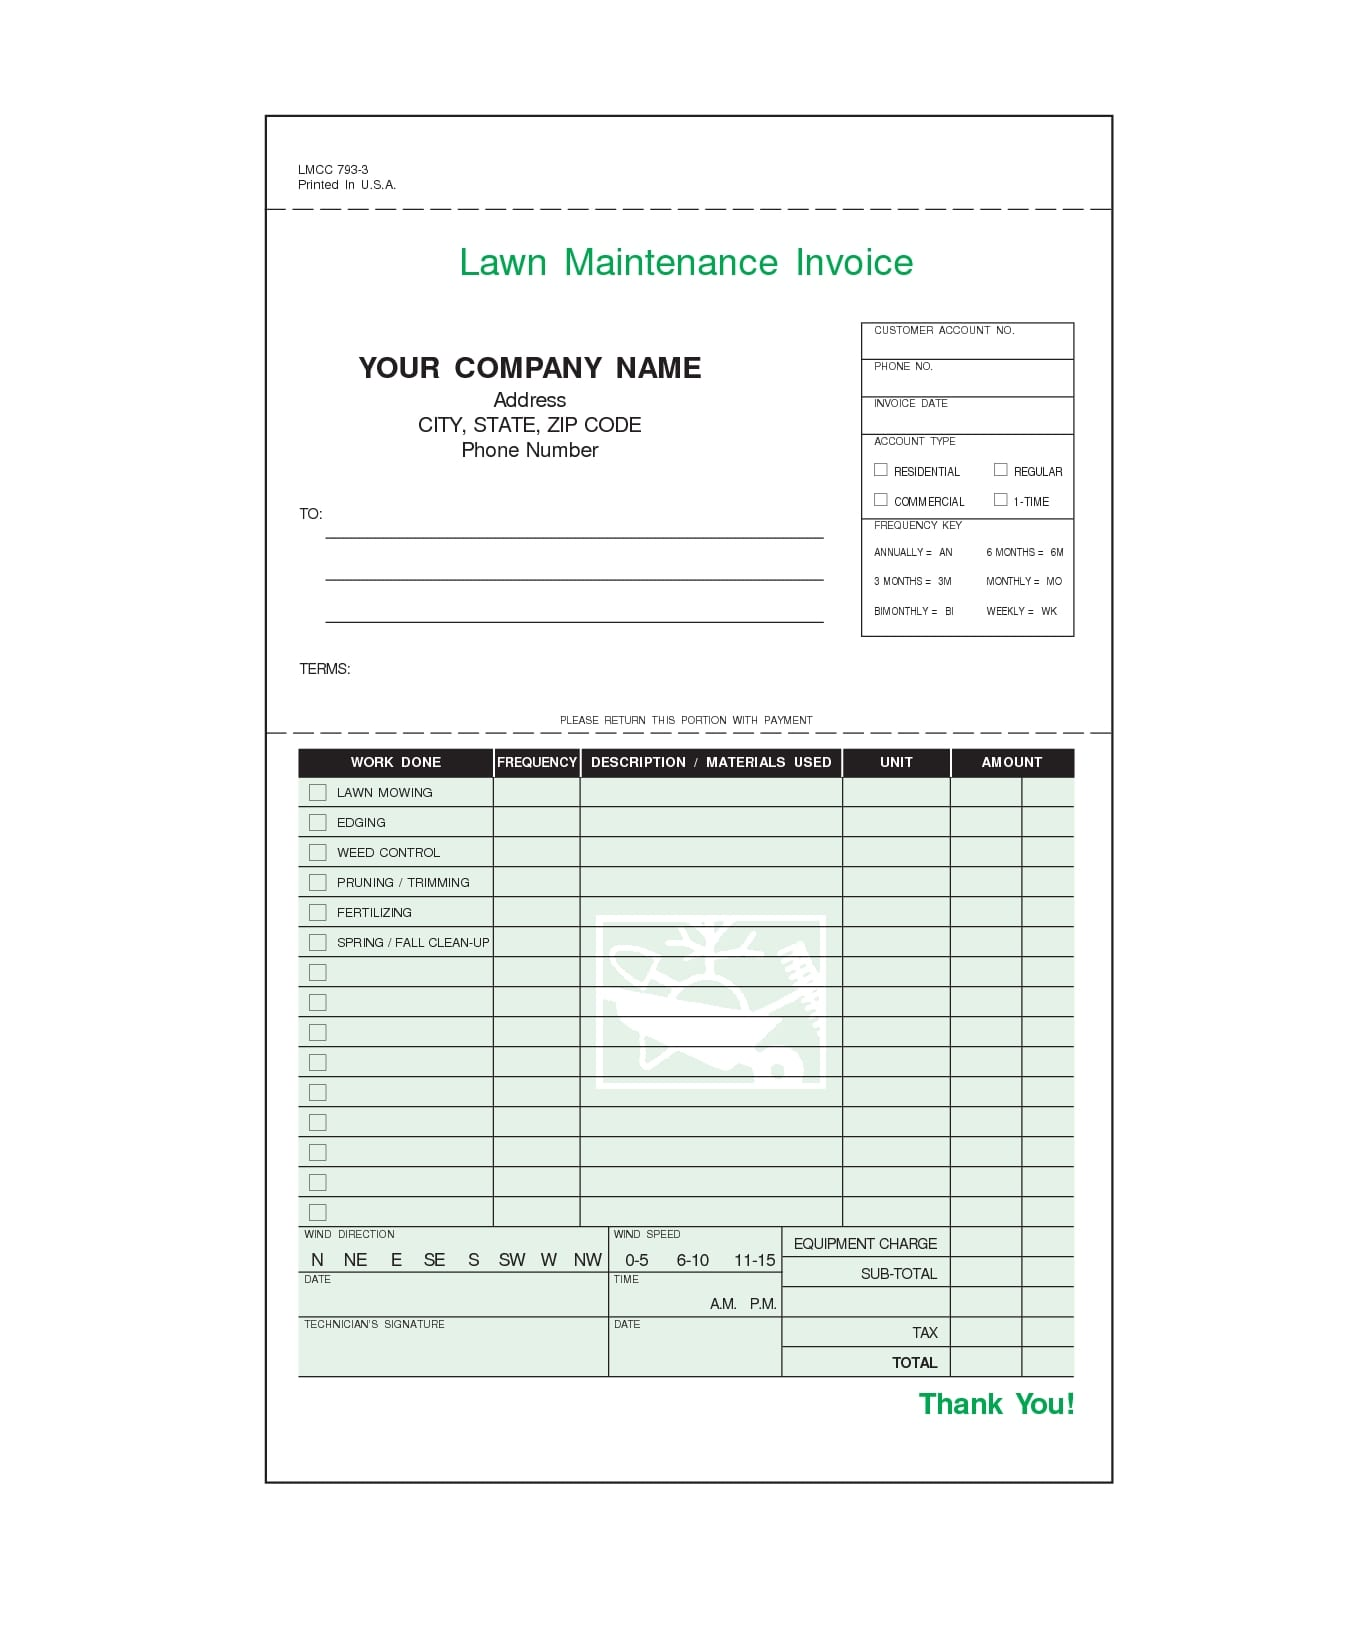 lawn maintenance invoice forms